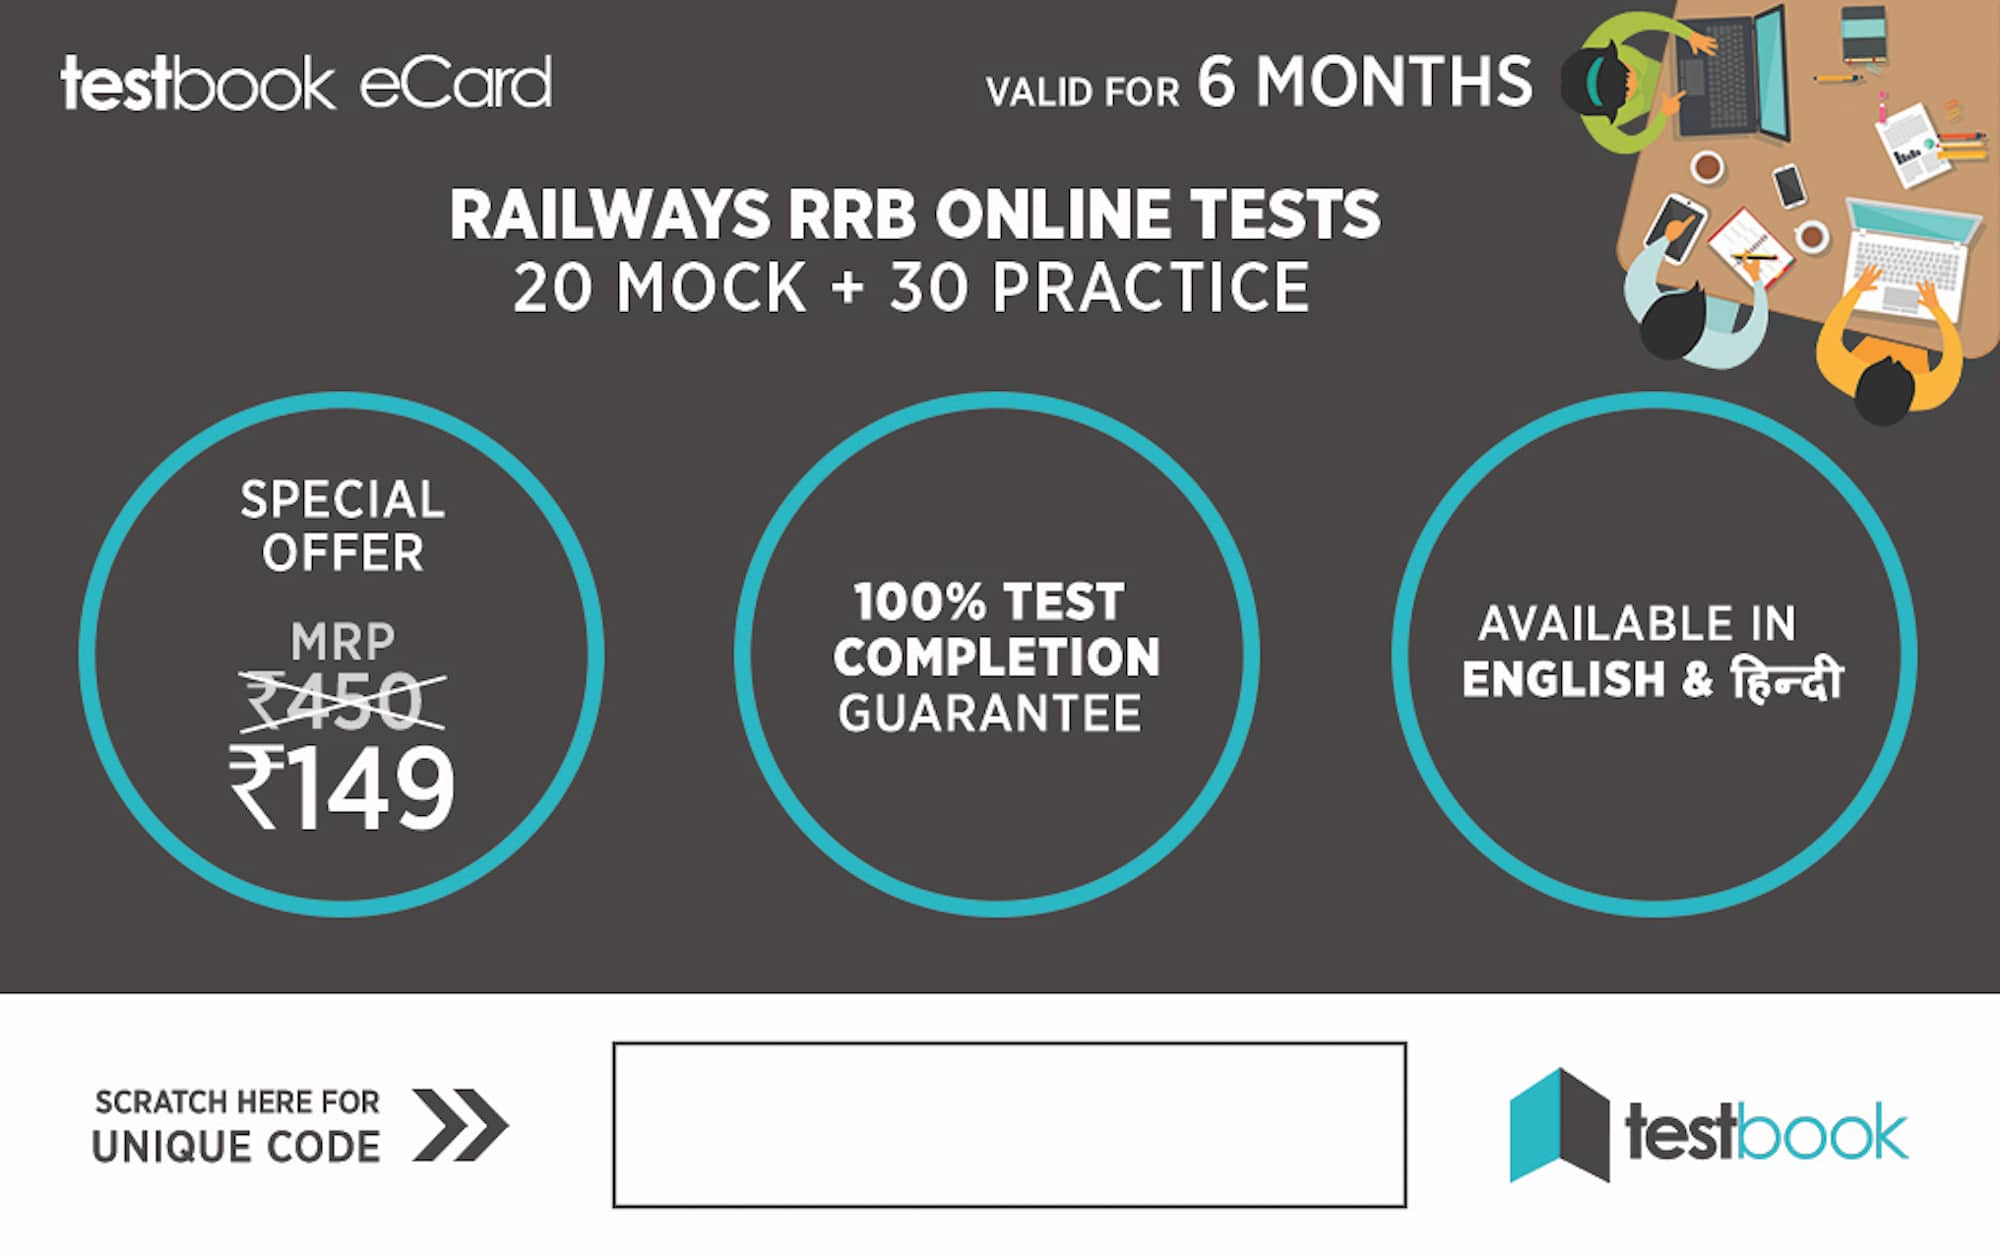 Testbook eCard for Railway RRB